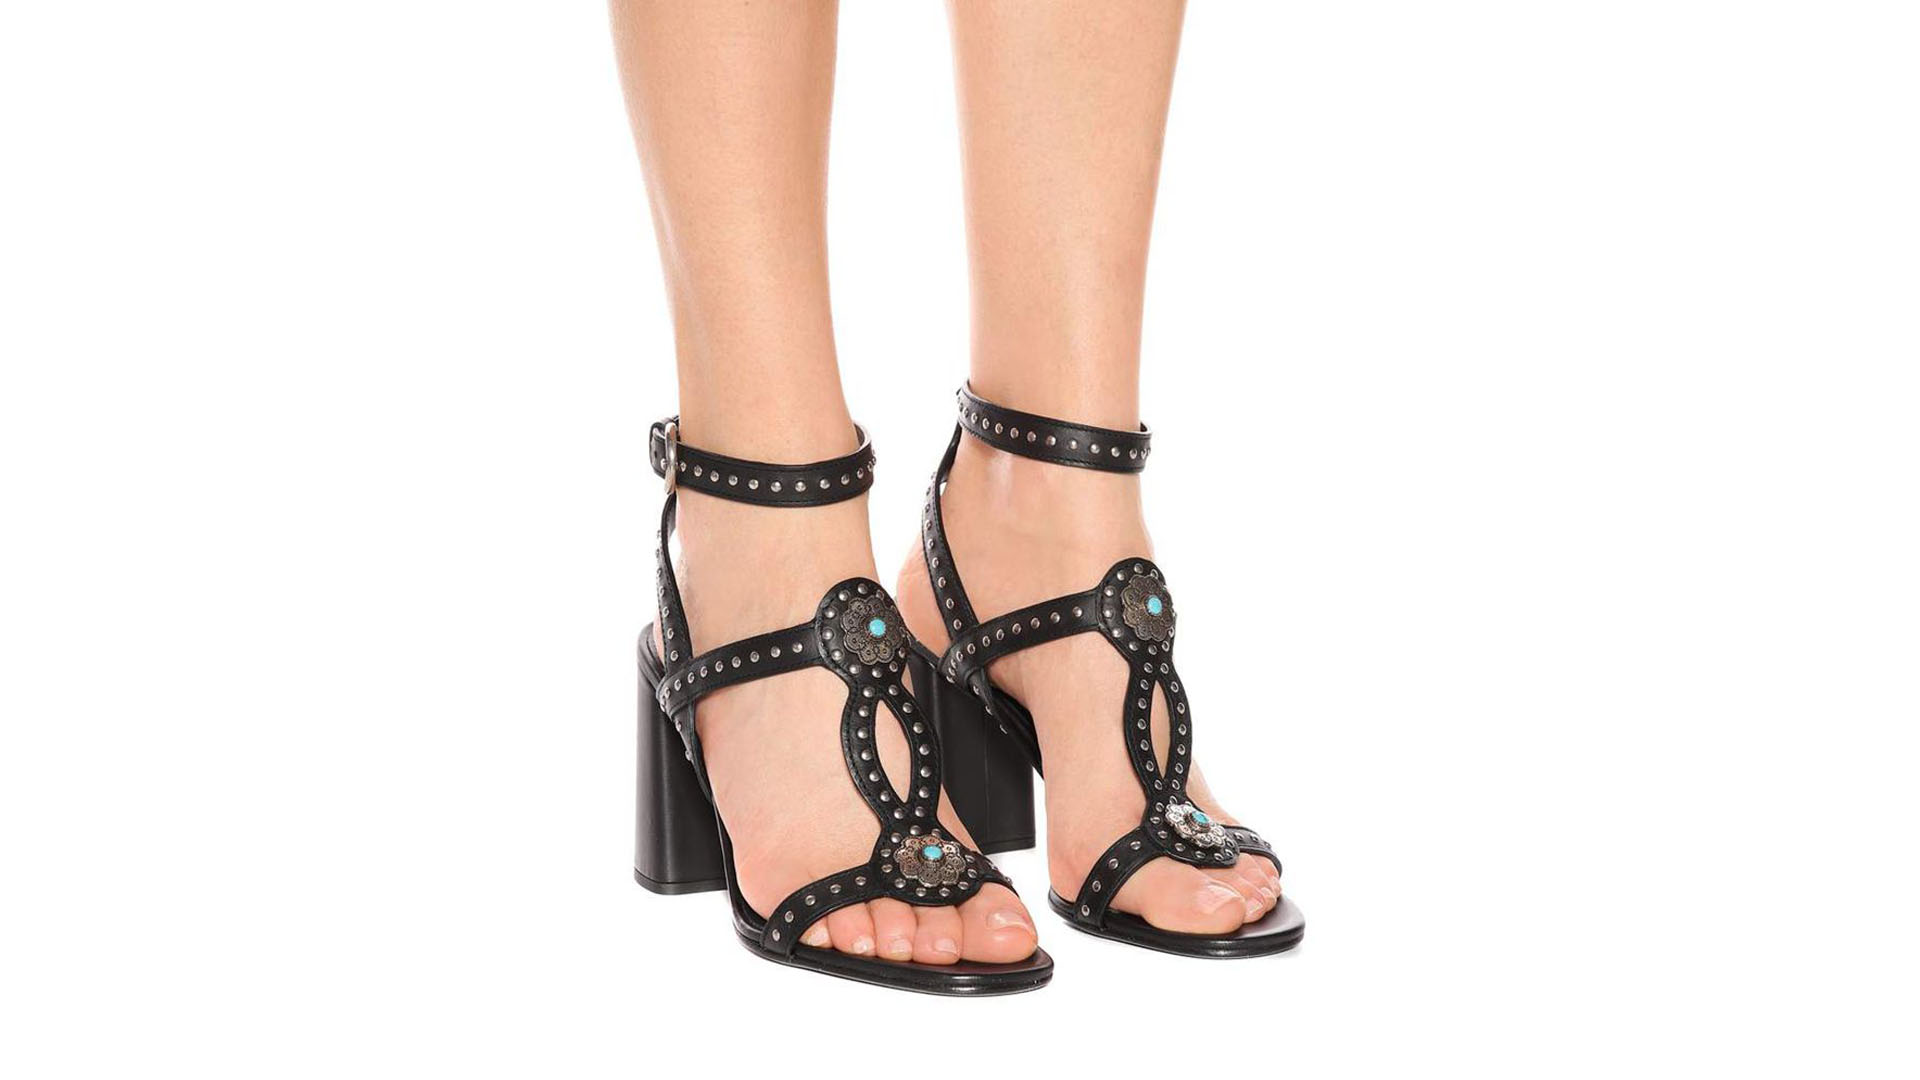 Prada Designer Shoes Black Embellished Ankle Strap Sandals Over 50% OFF